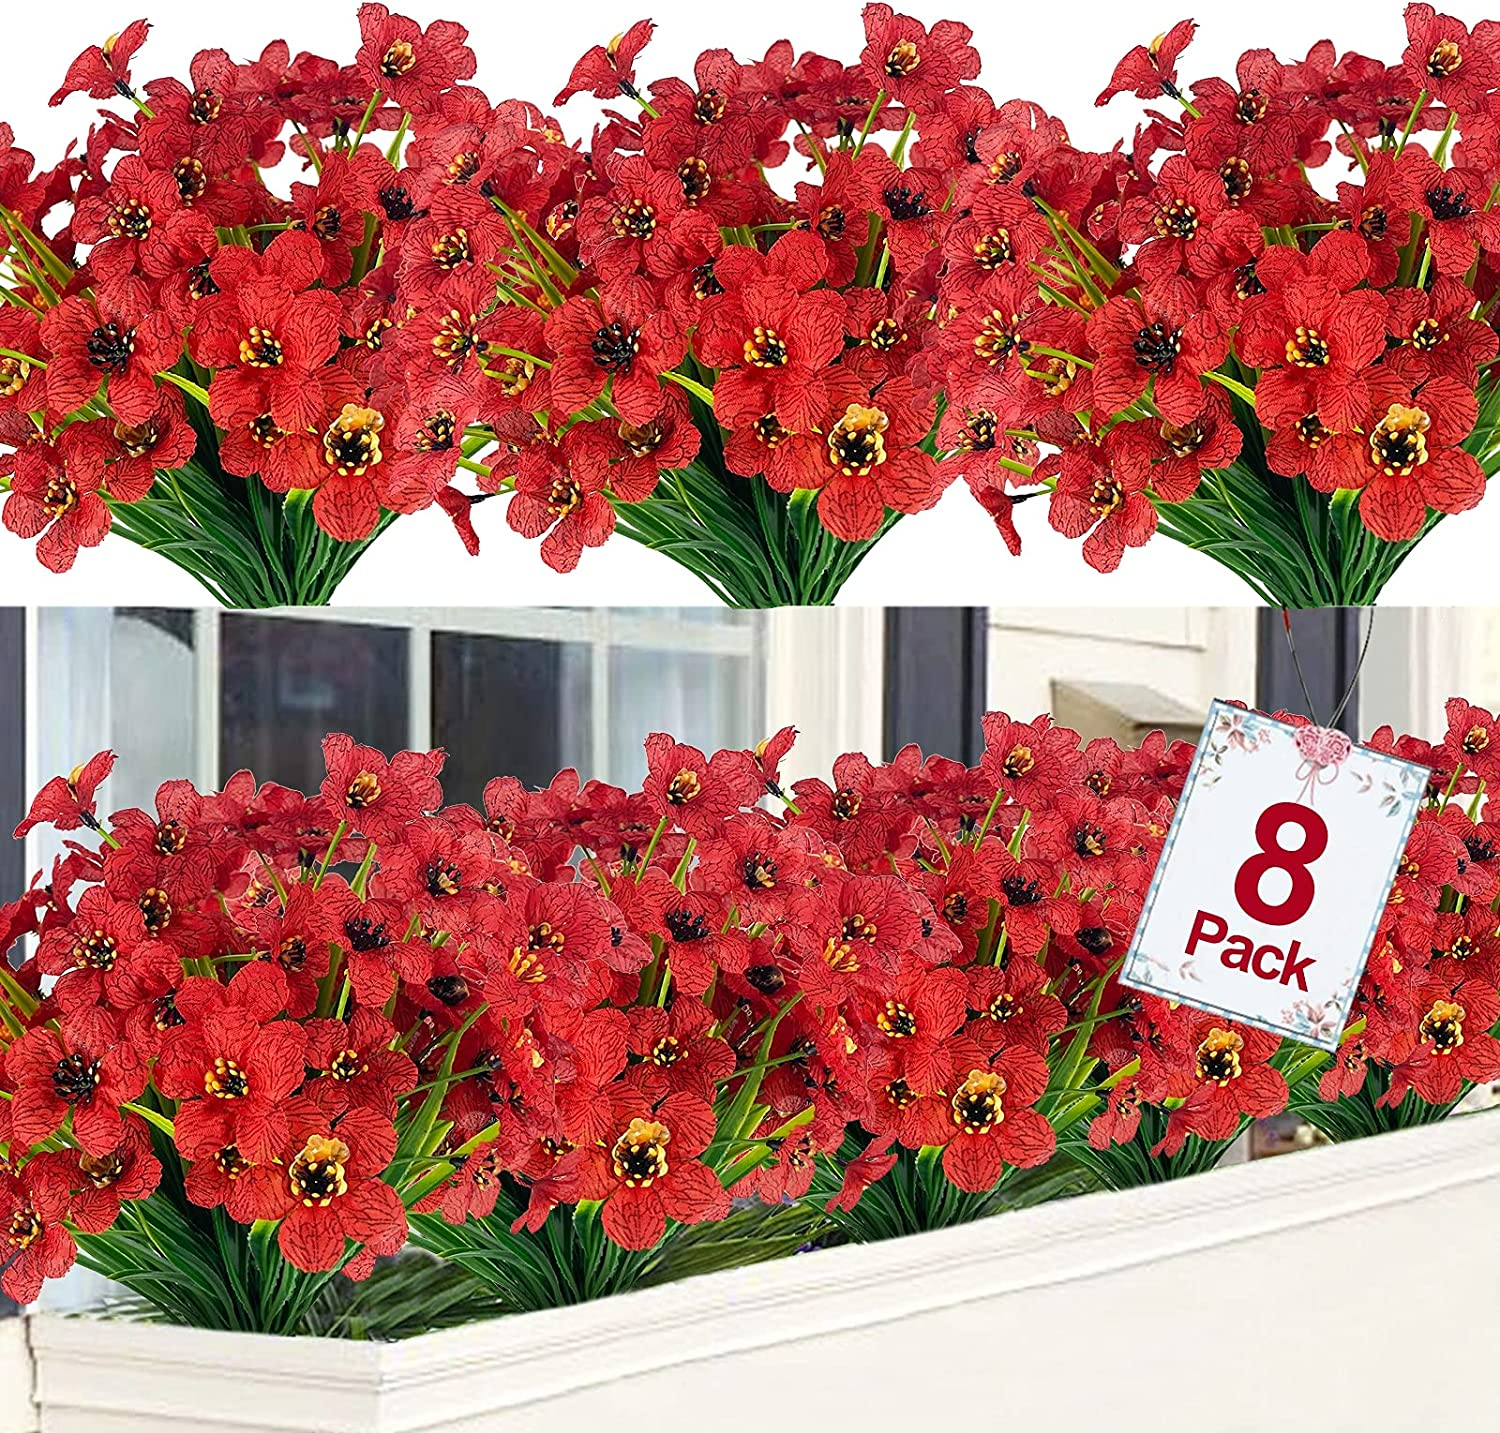 TURNMEON Artificial Flowers Outdoor UV Resistant Plastic Plant Silk Flower, Faux Fake Flower Greenery Shrub Plant Indoor Outdoor Hanging Planter Home Garden Porch Window Box Decor (Deep Red, 8)